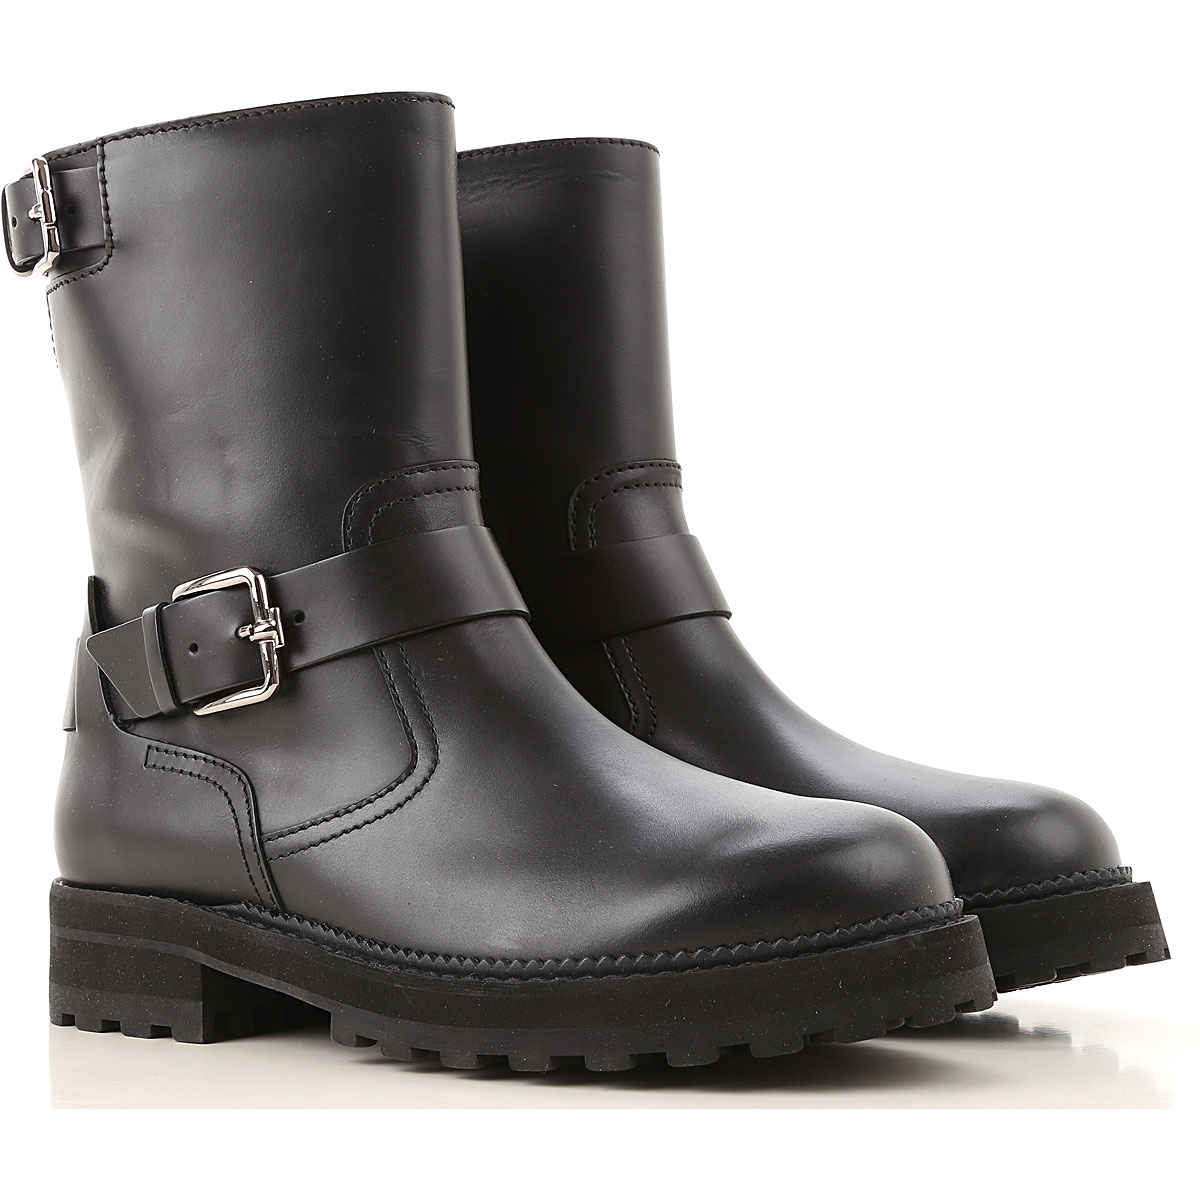 Tods Boots for Women, Booties, Black, Leather, 2019, 10 5 6.5